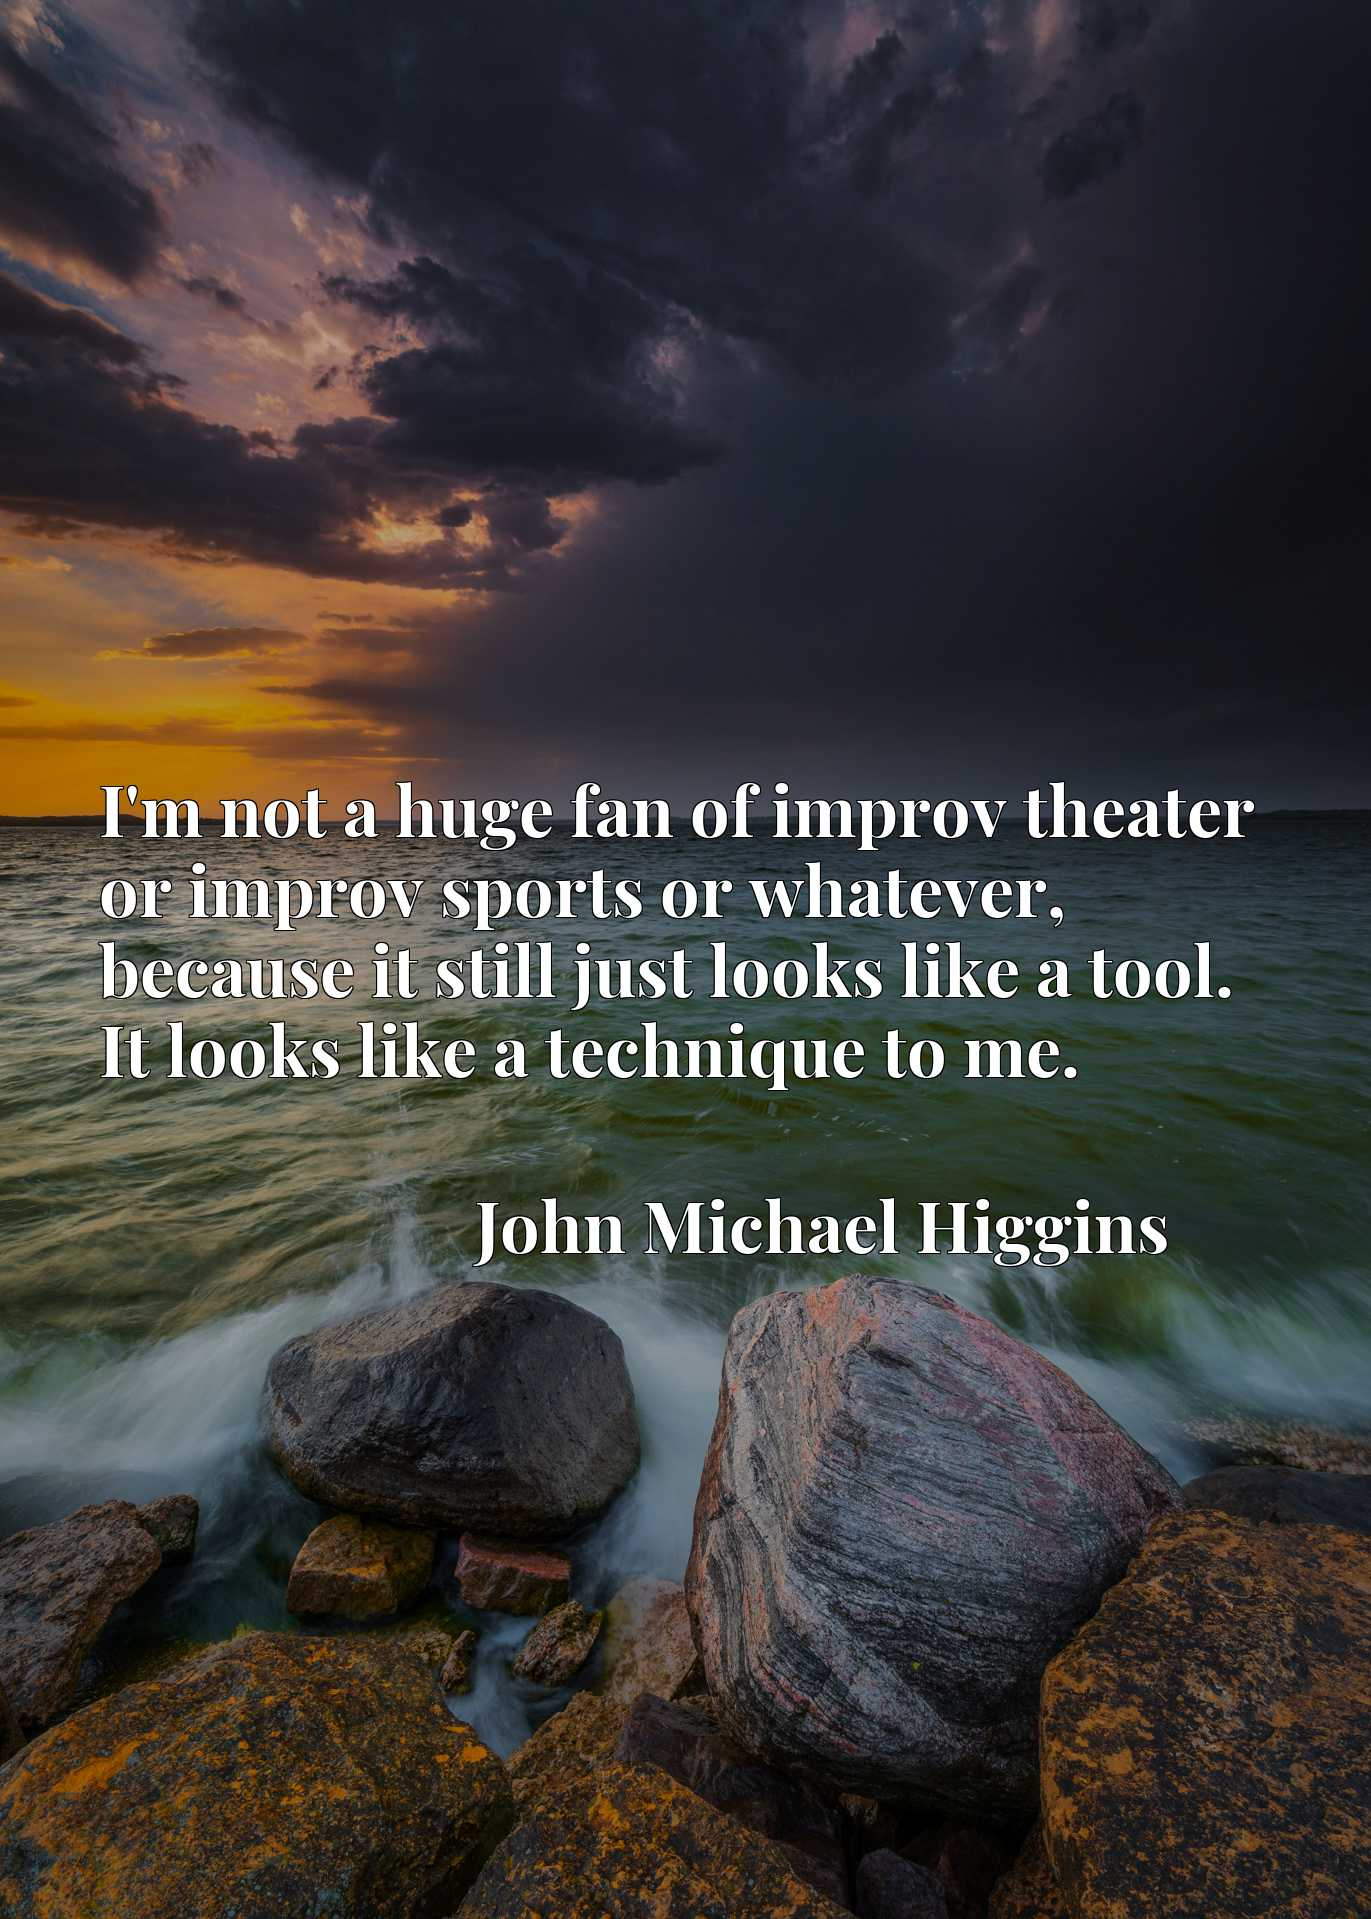 Quote Picture :I'm not a huge fan of improv theater or improv sports or whatever, because it still just looks like a tool. It looks like a technique to me.